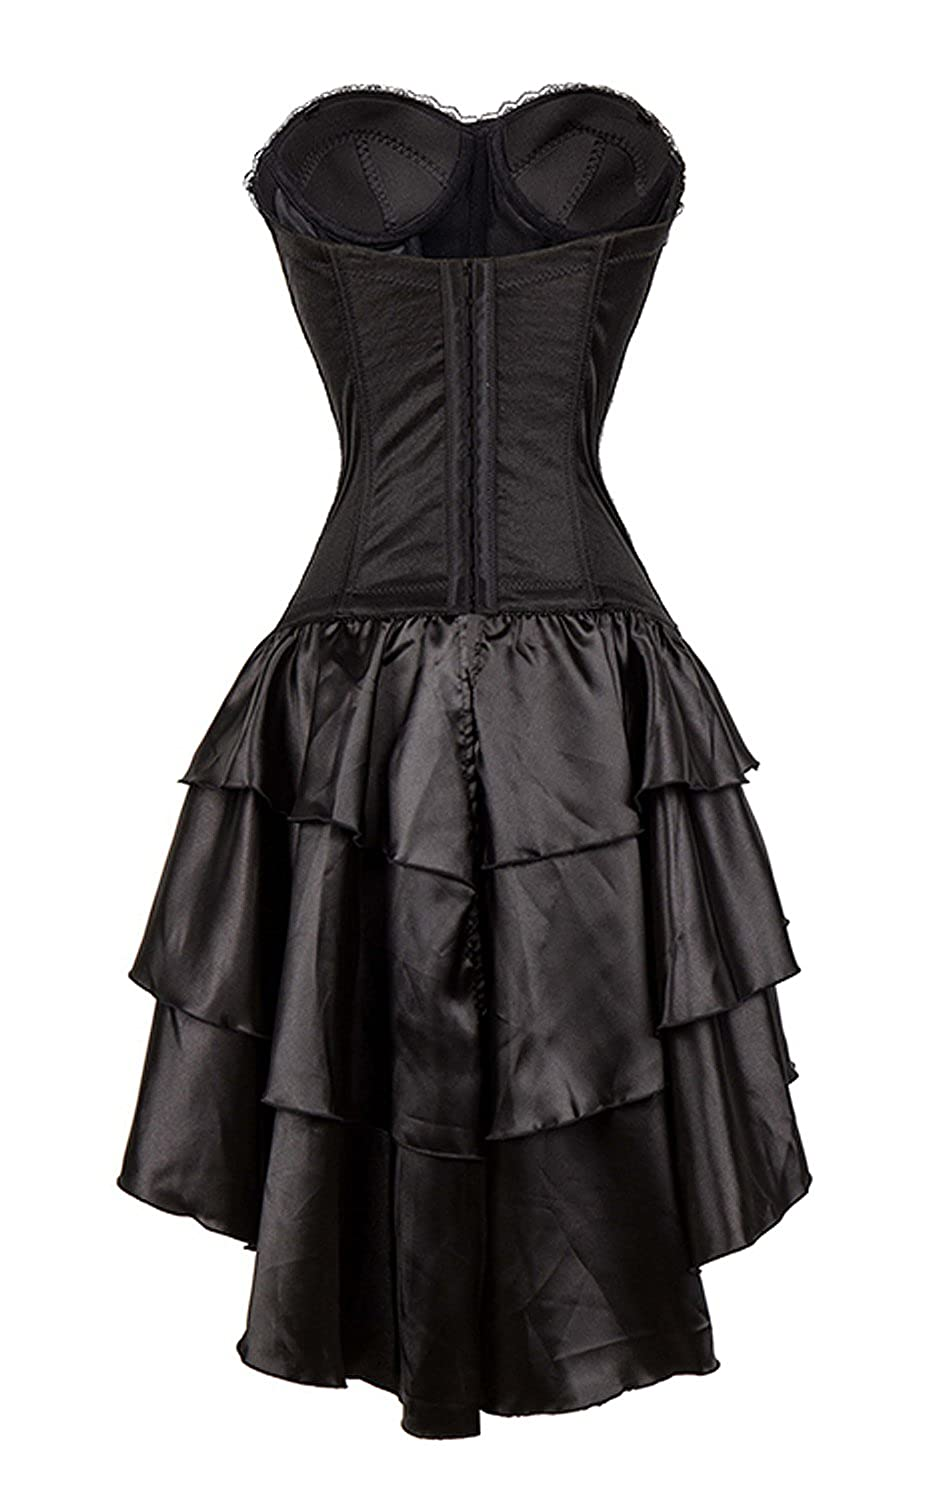 Amazon.com  Killreal Women s Strapless Steampunk Gothic Corset Dress  Halloween Costume Black Small  Clothing 93f1f0beb